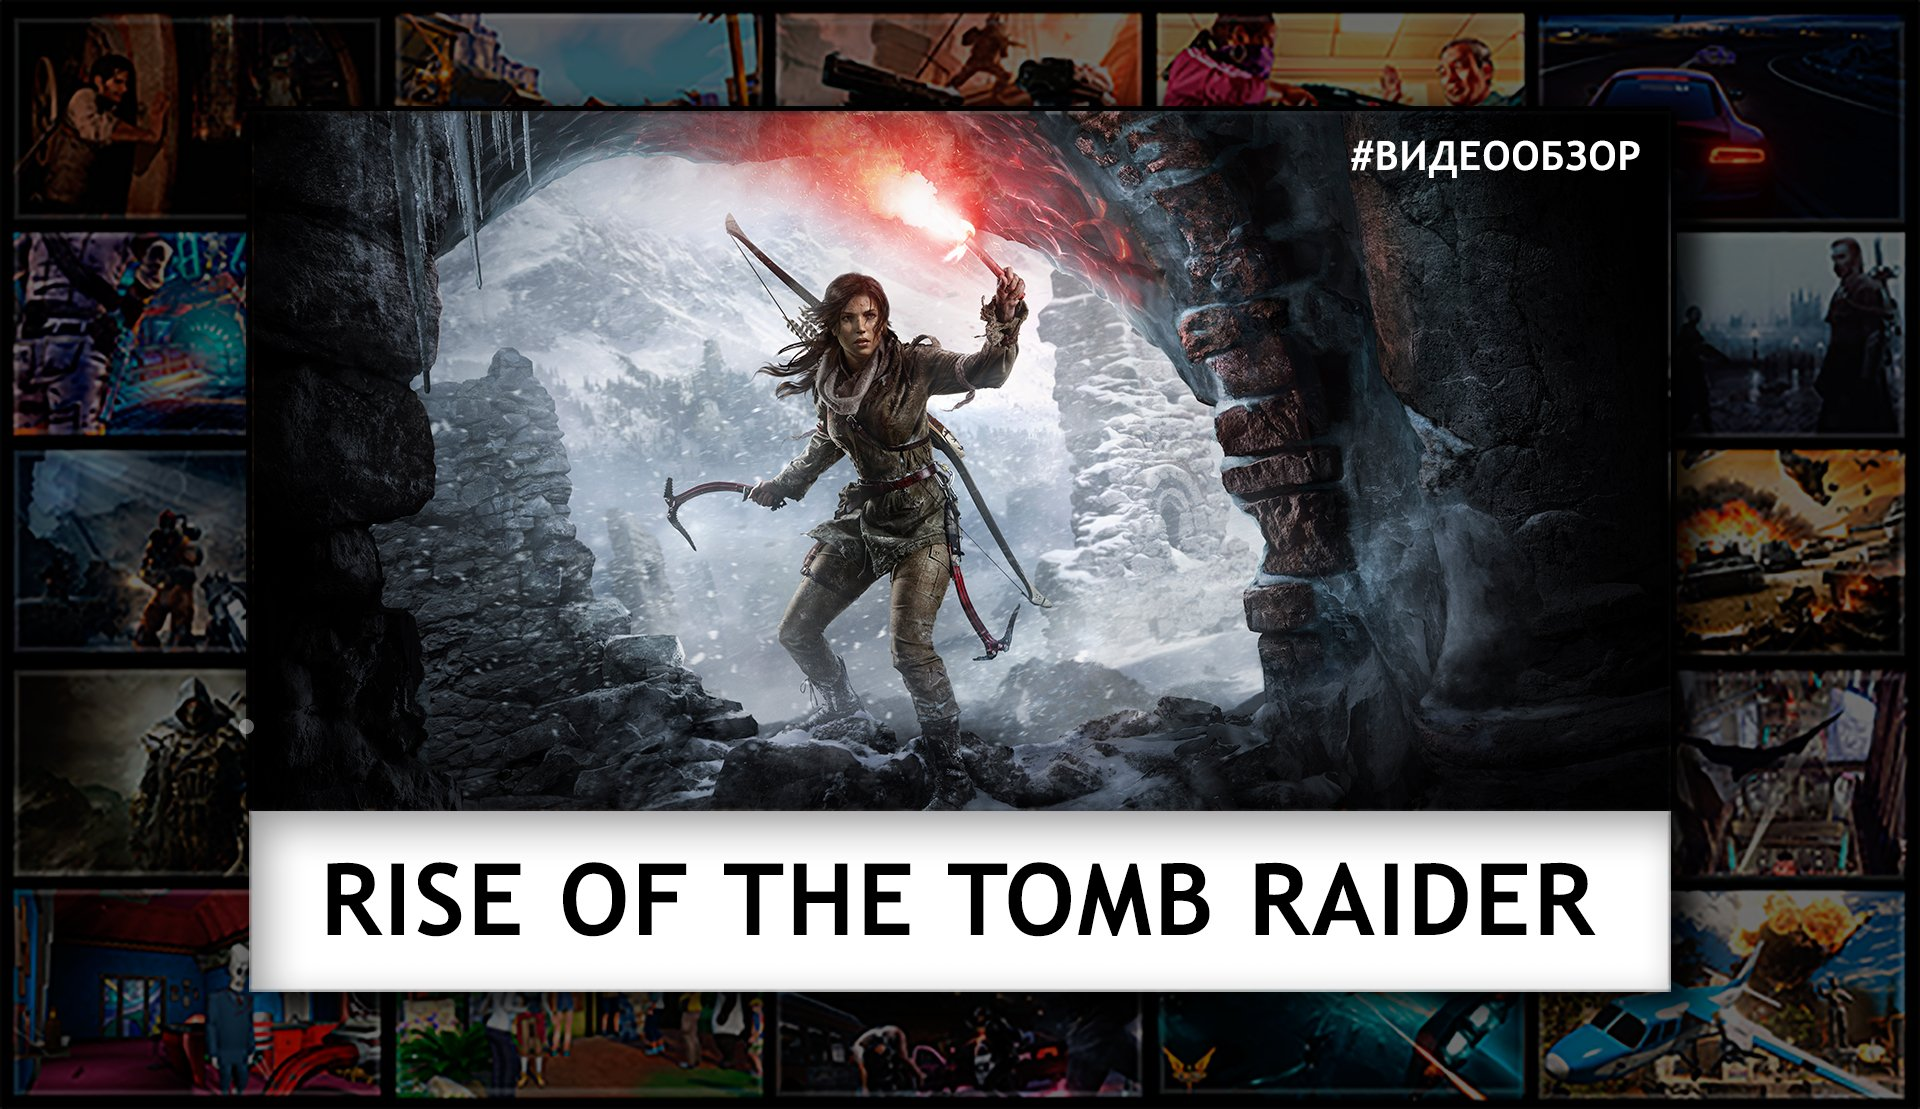 Видеообзор Rise of the Tomb Raider - Изображение 1